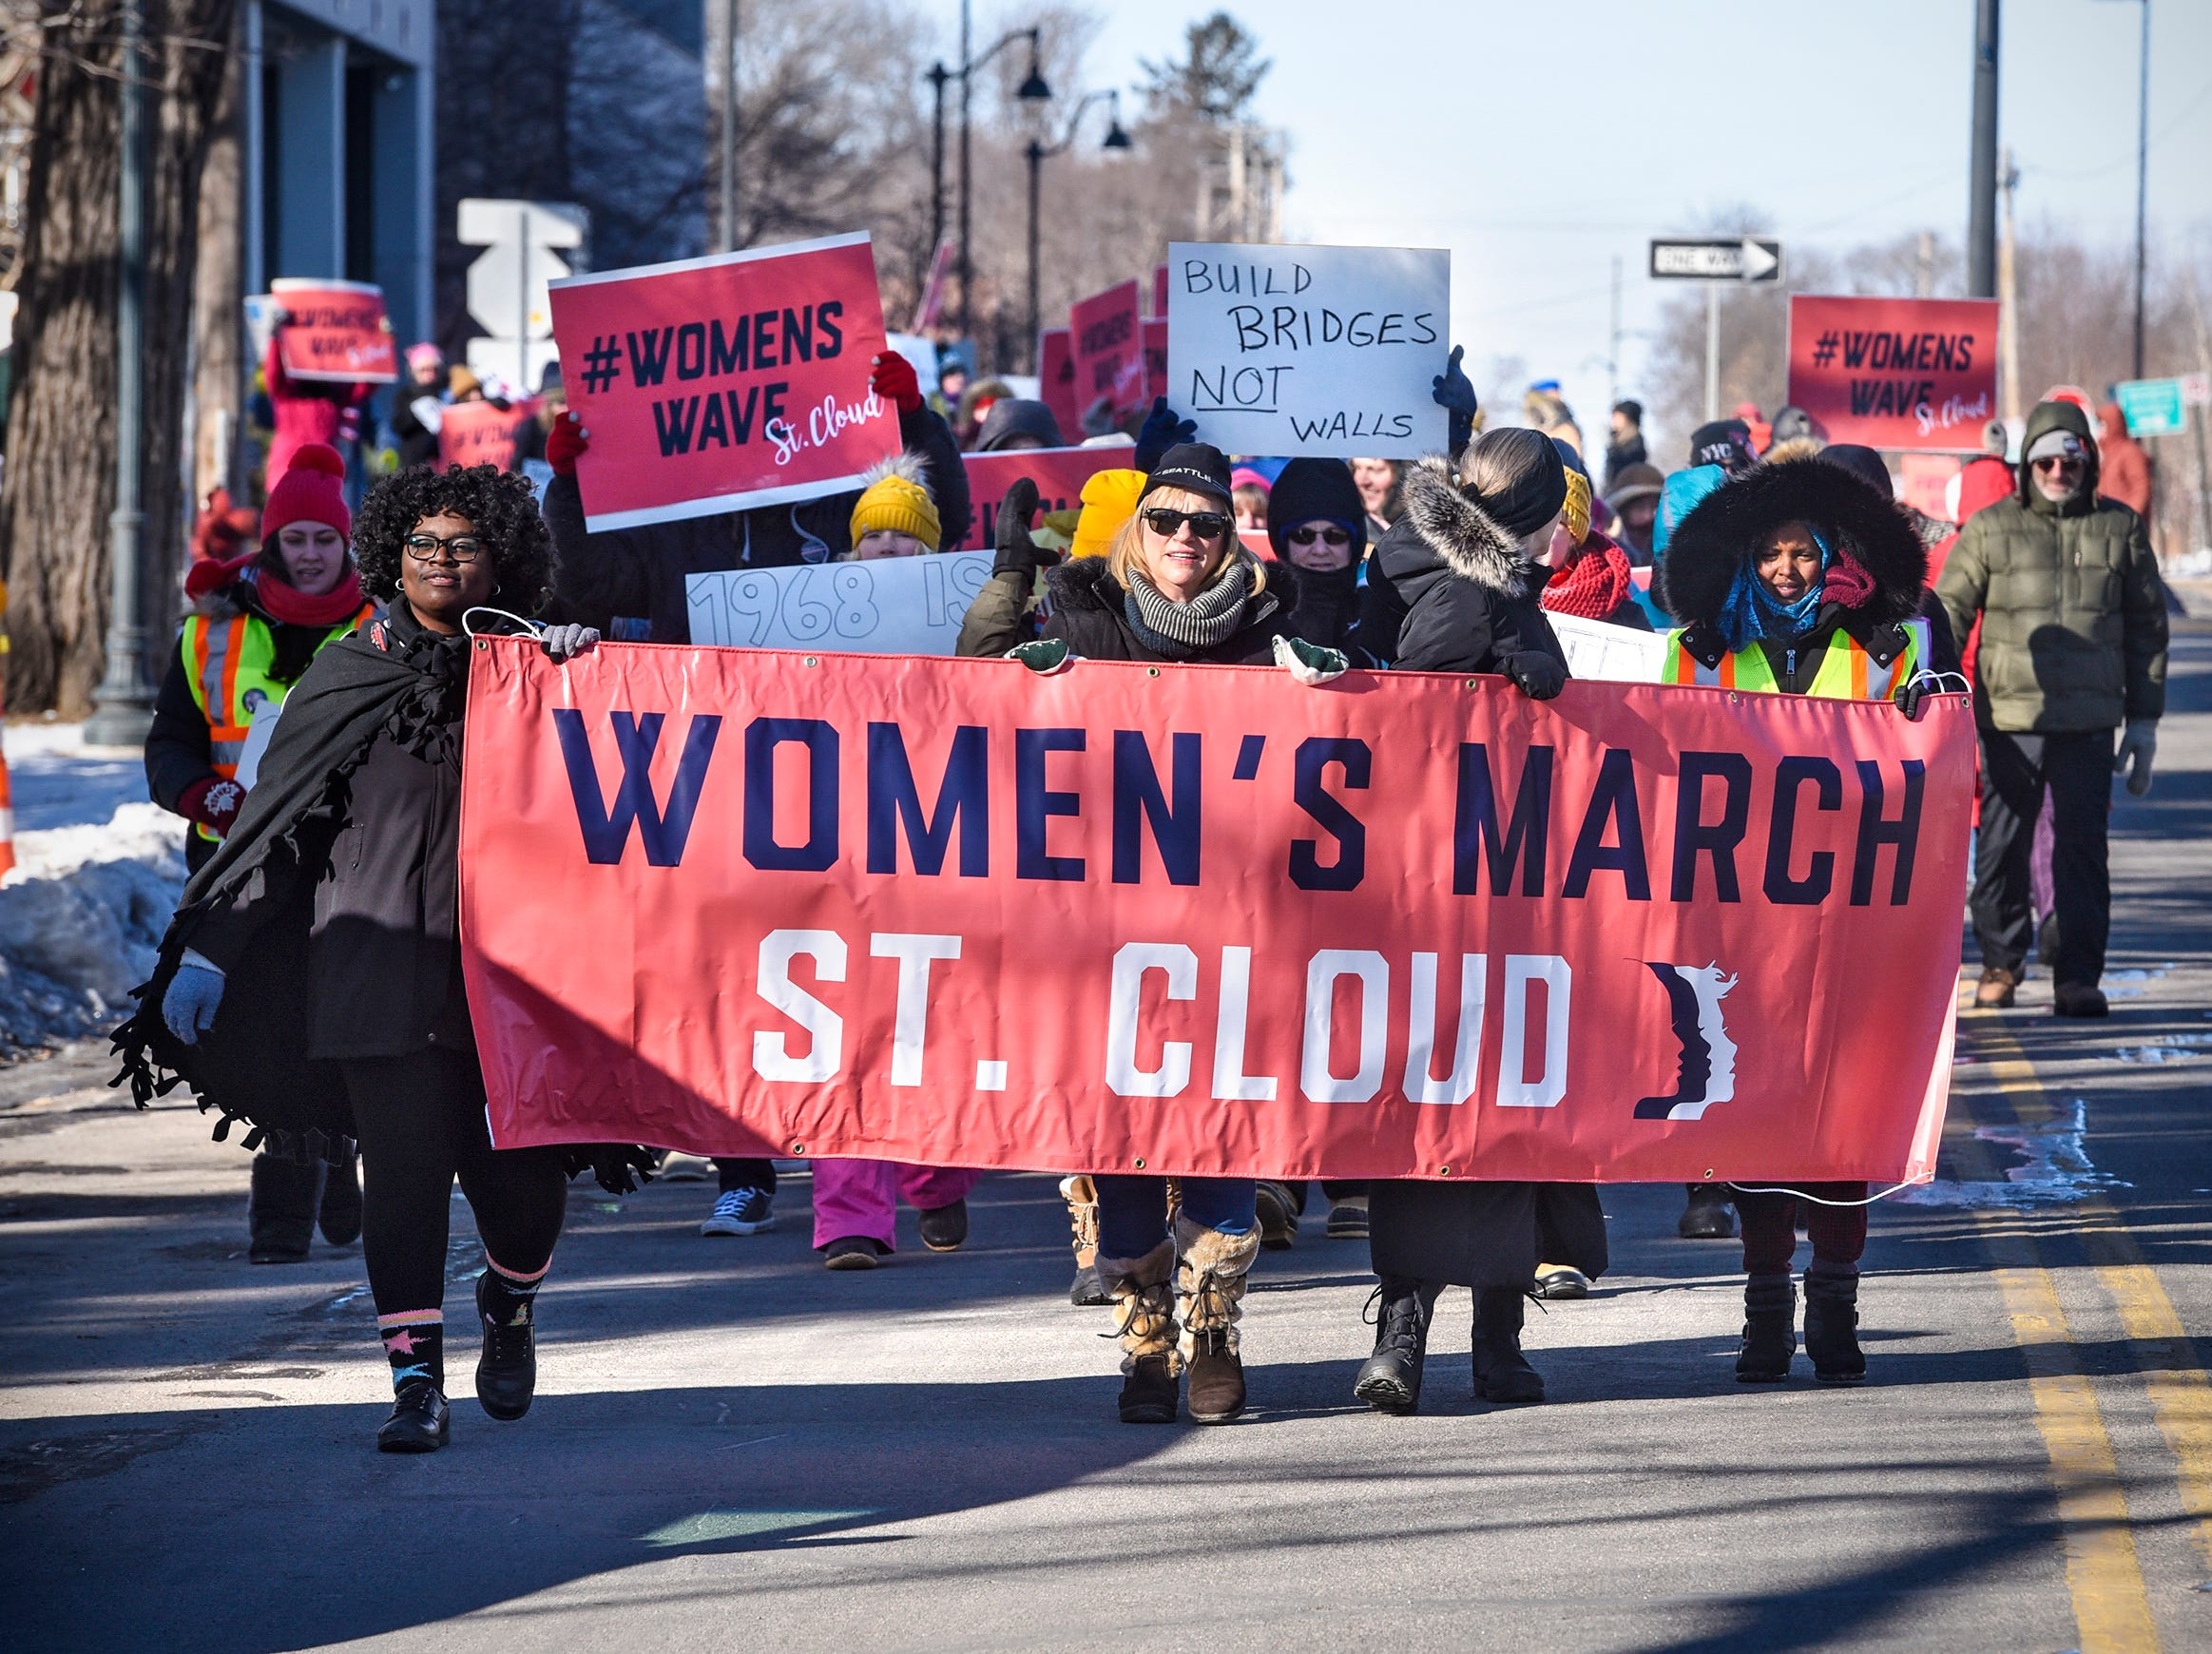 Participants brave cold temperatures to take part in the WomensWave march Saturday, Jan. 19, in St. Cloud. The local event was part of national Women's March activities taking place throughout the nation Saturday.